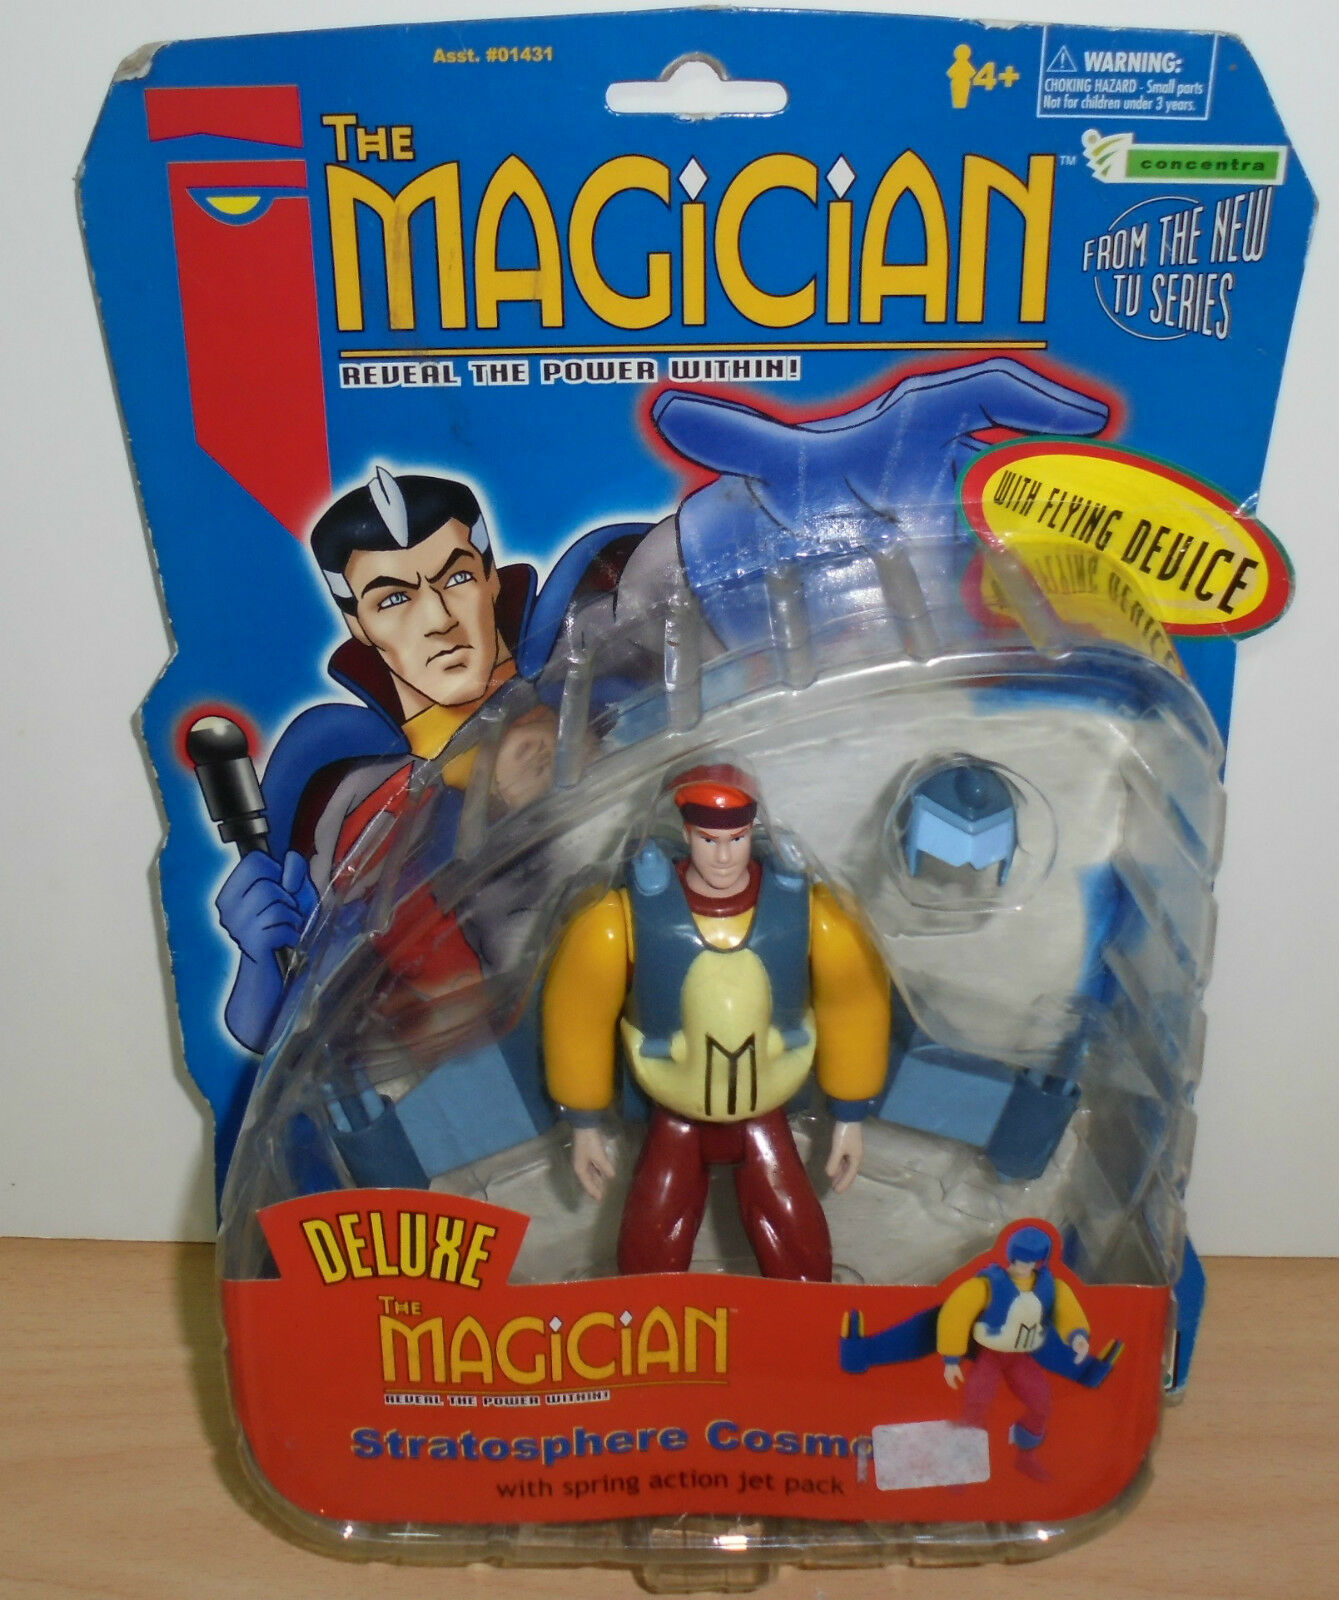 THE MAGICIAN STRATOSPHERE COSMO Action Action Action Figure 1998 GP Gaumont CONCENTRA NEW 9b3611